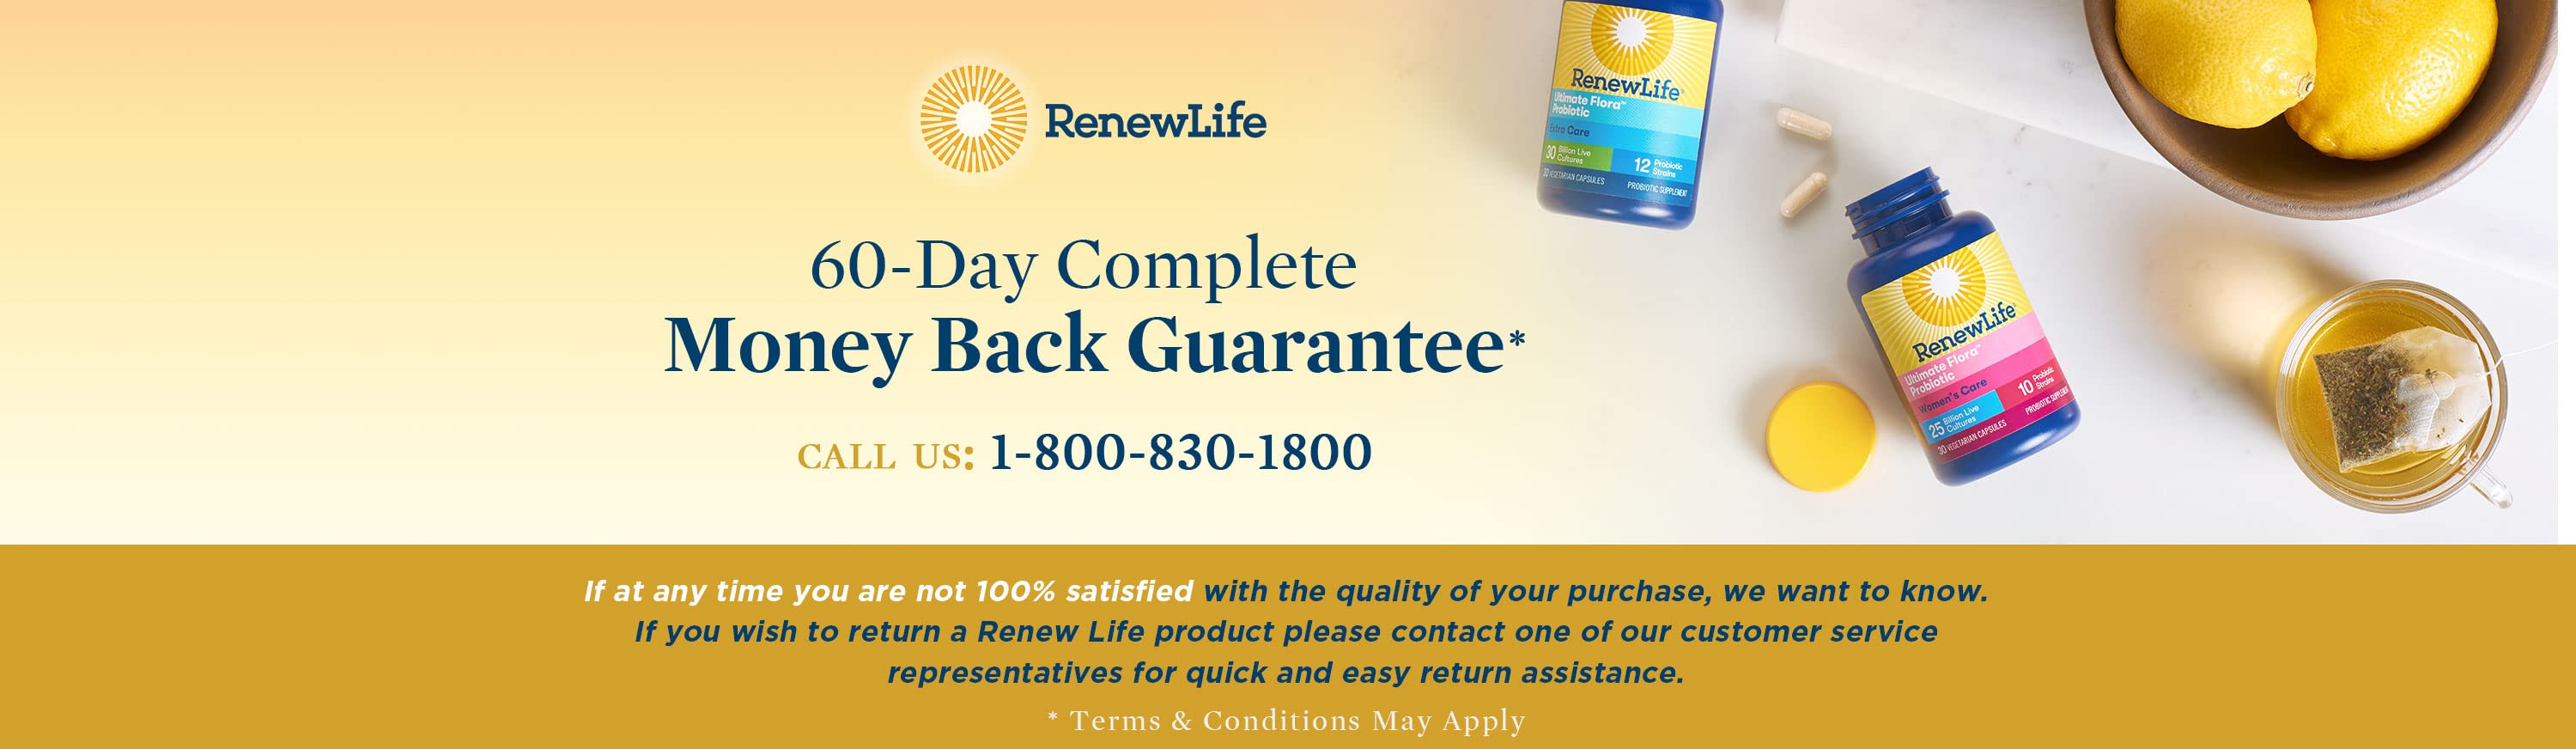 Renew Life. 60-Day Complete Money Back Guarantee. call us: 1-800-830-1800. If at any time you are not 100% satisfied with the quality of your purchase, we want to know. If you wish to return a Renew Life product please contact one of our customer service representatives for quick and easy return assistance.  Terms & Conditions May Apply